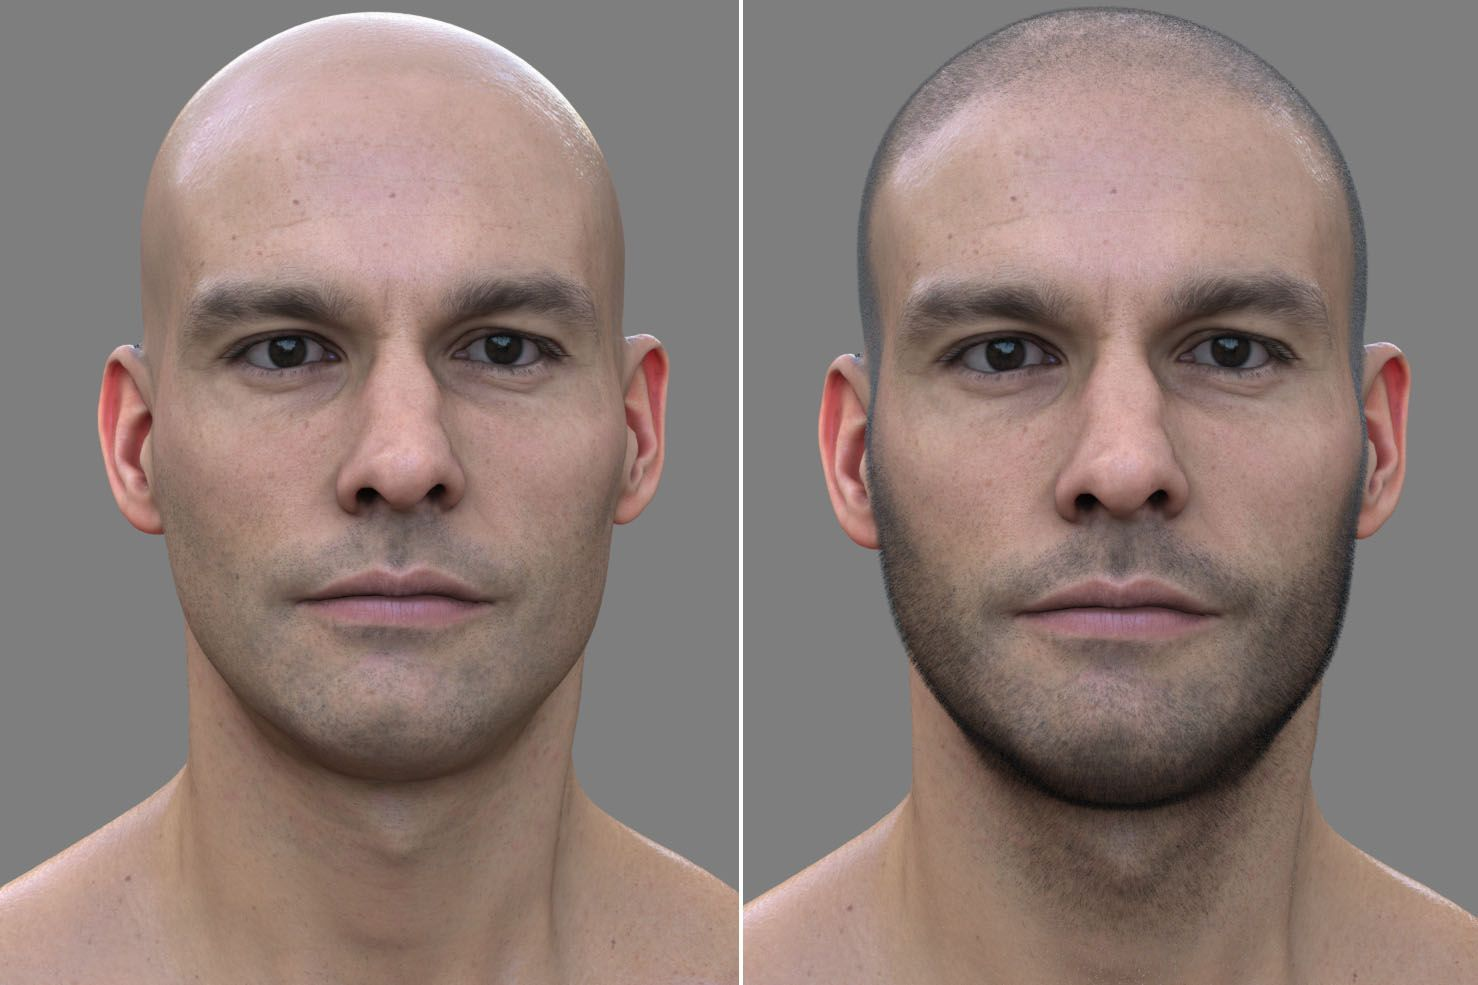 Creating a photorealistic 3D human